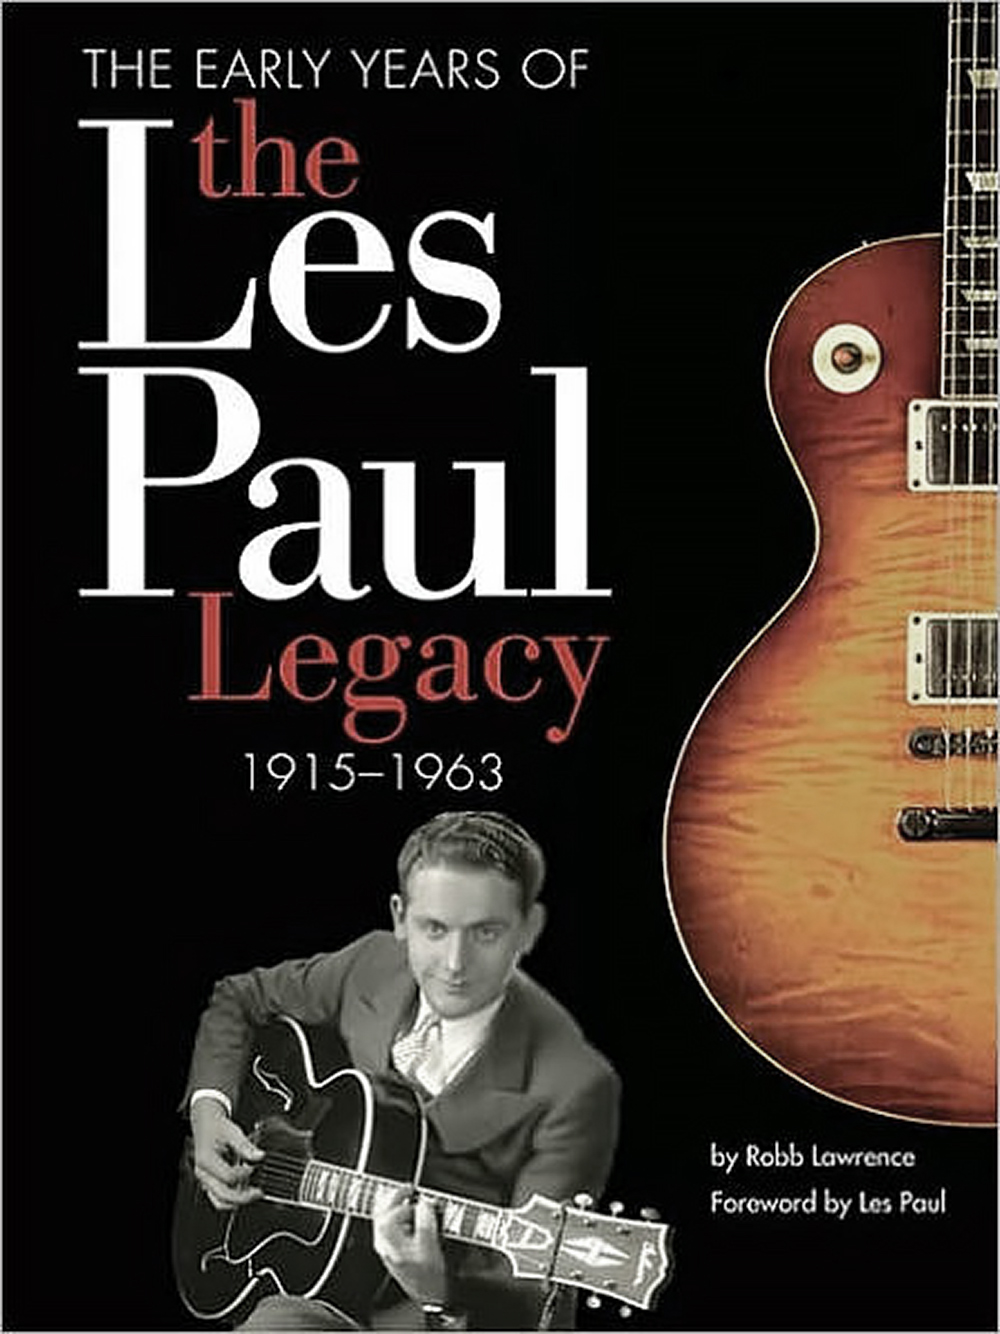 the les paul legacy, vol 1, by robb lawrence